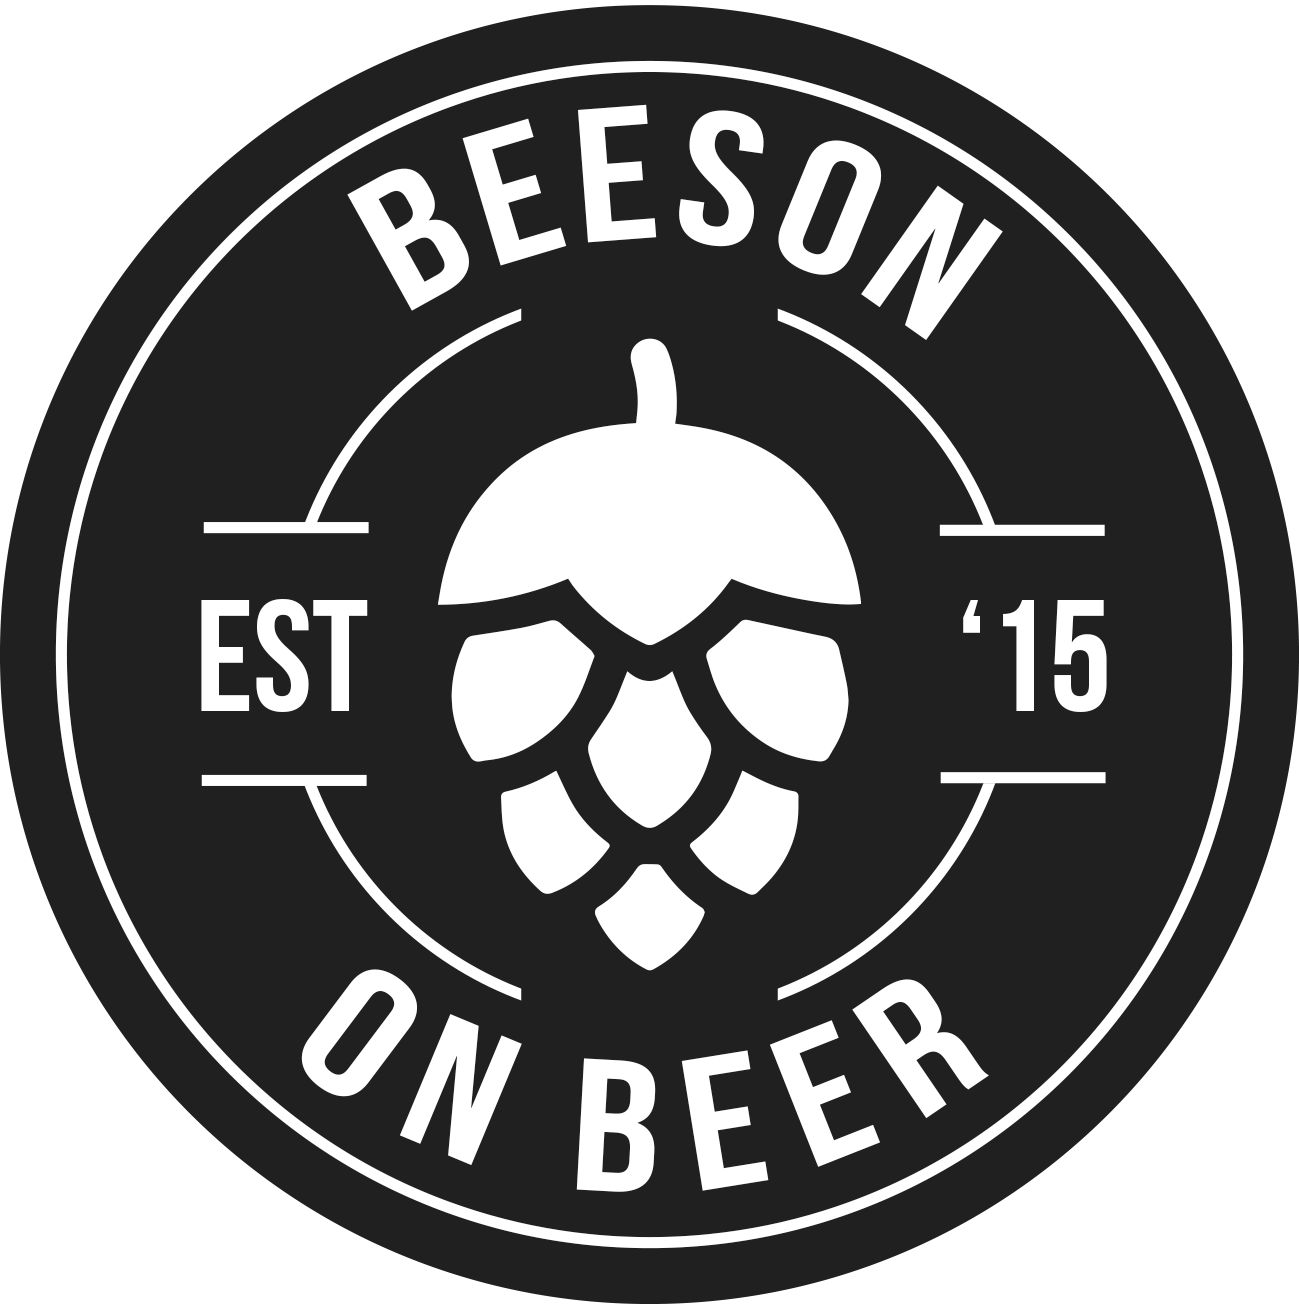 Beeson On Beer